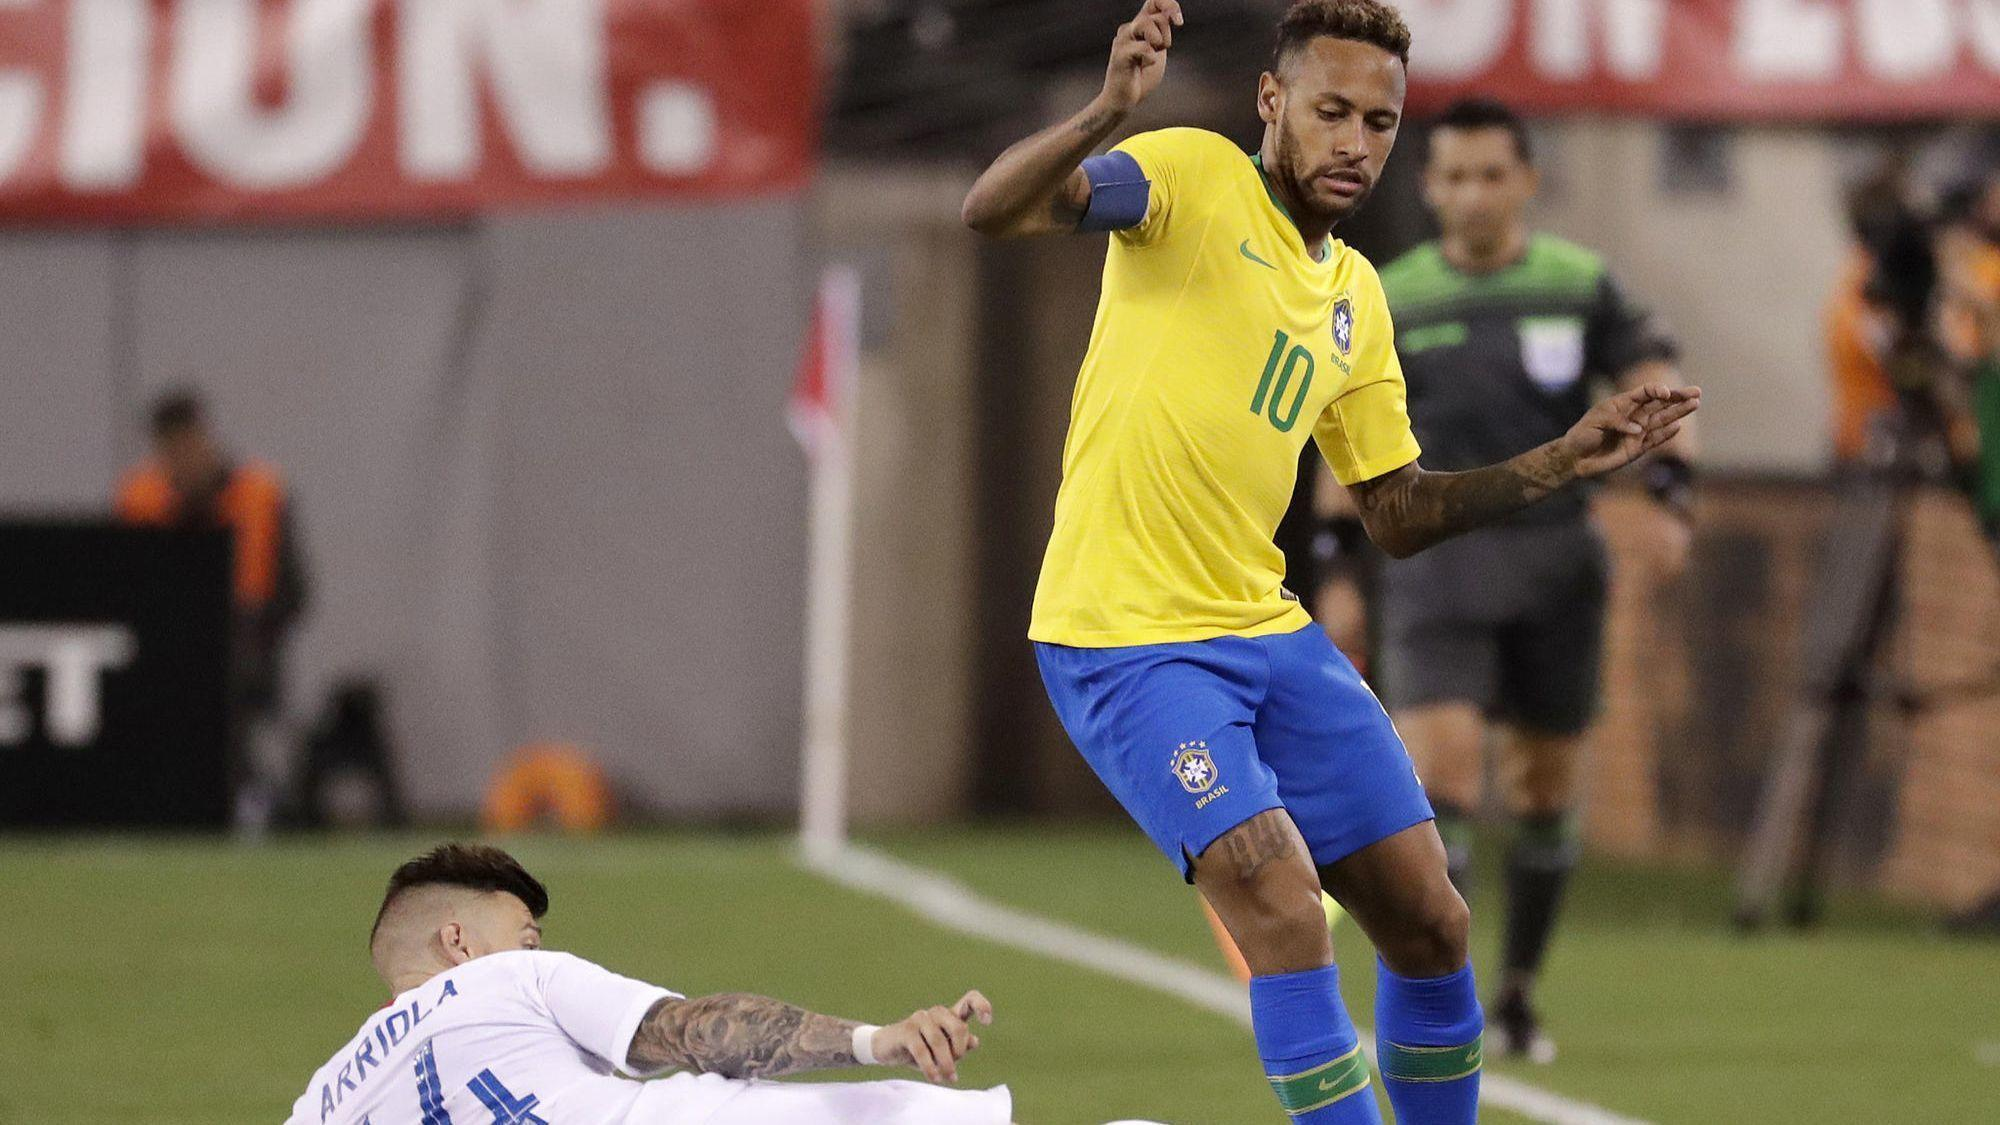 247332a49f8 U.S. men s soccer team falls to Brazil 2-0 behind goals from Neymar ...